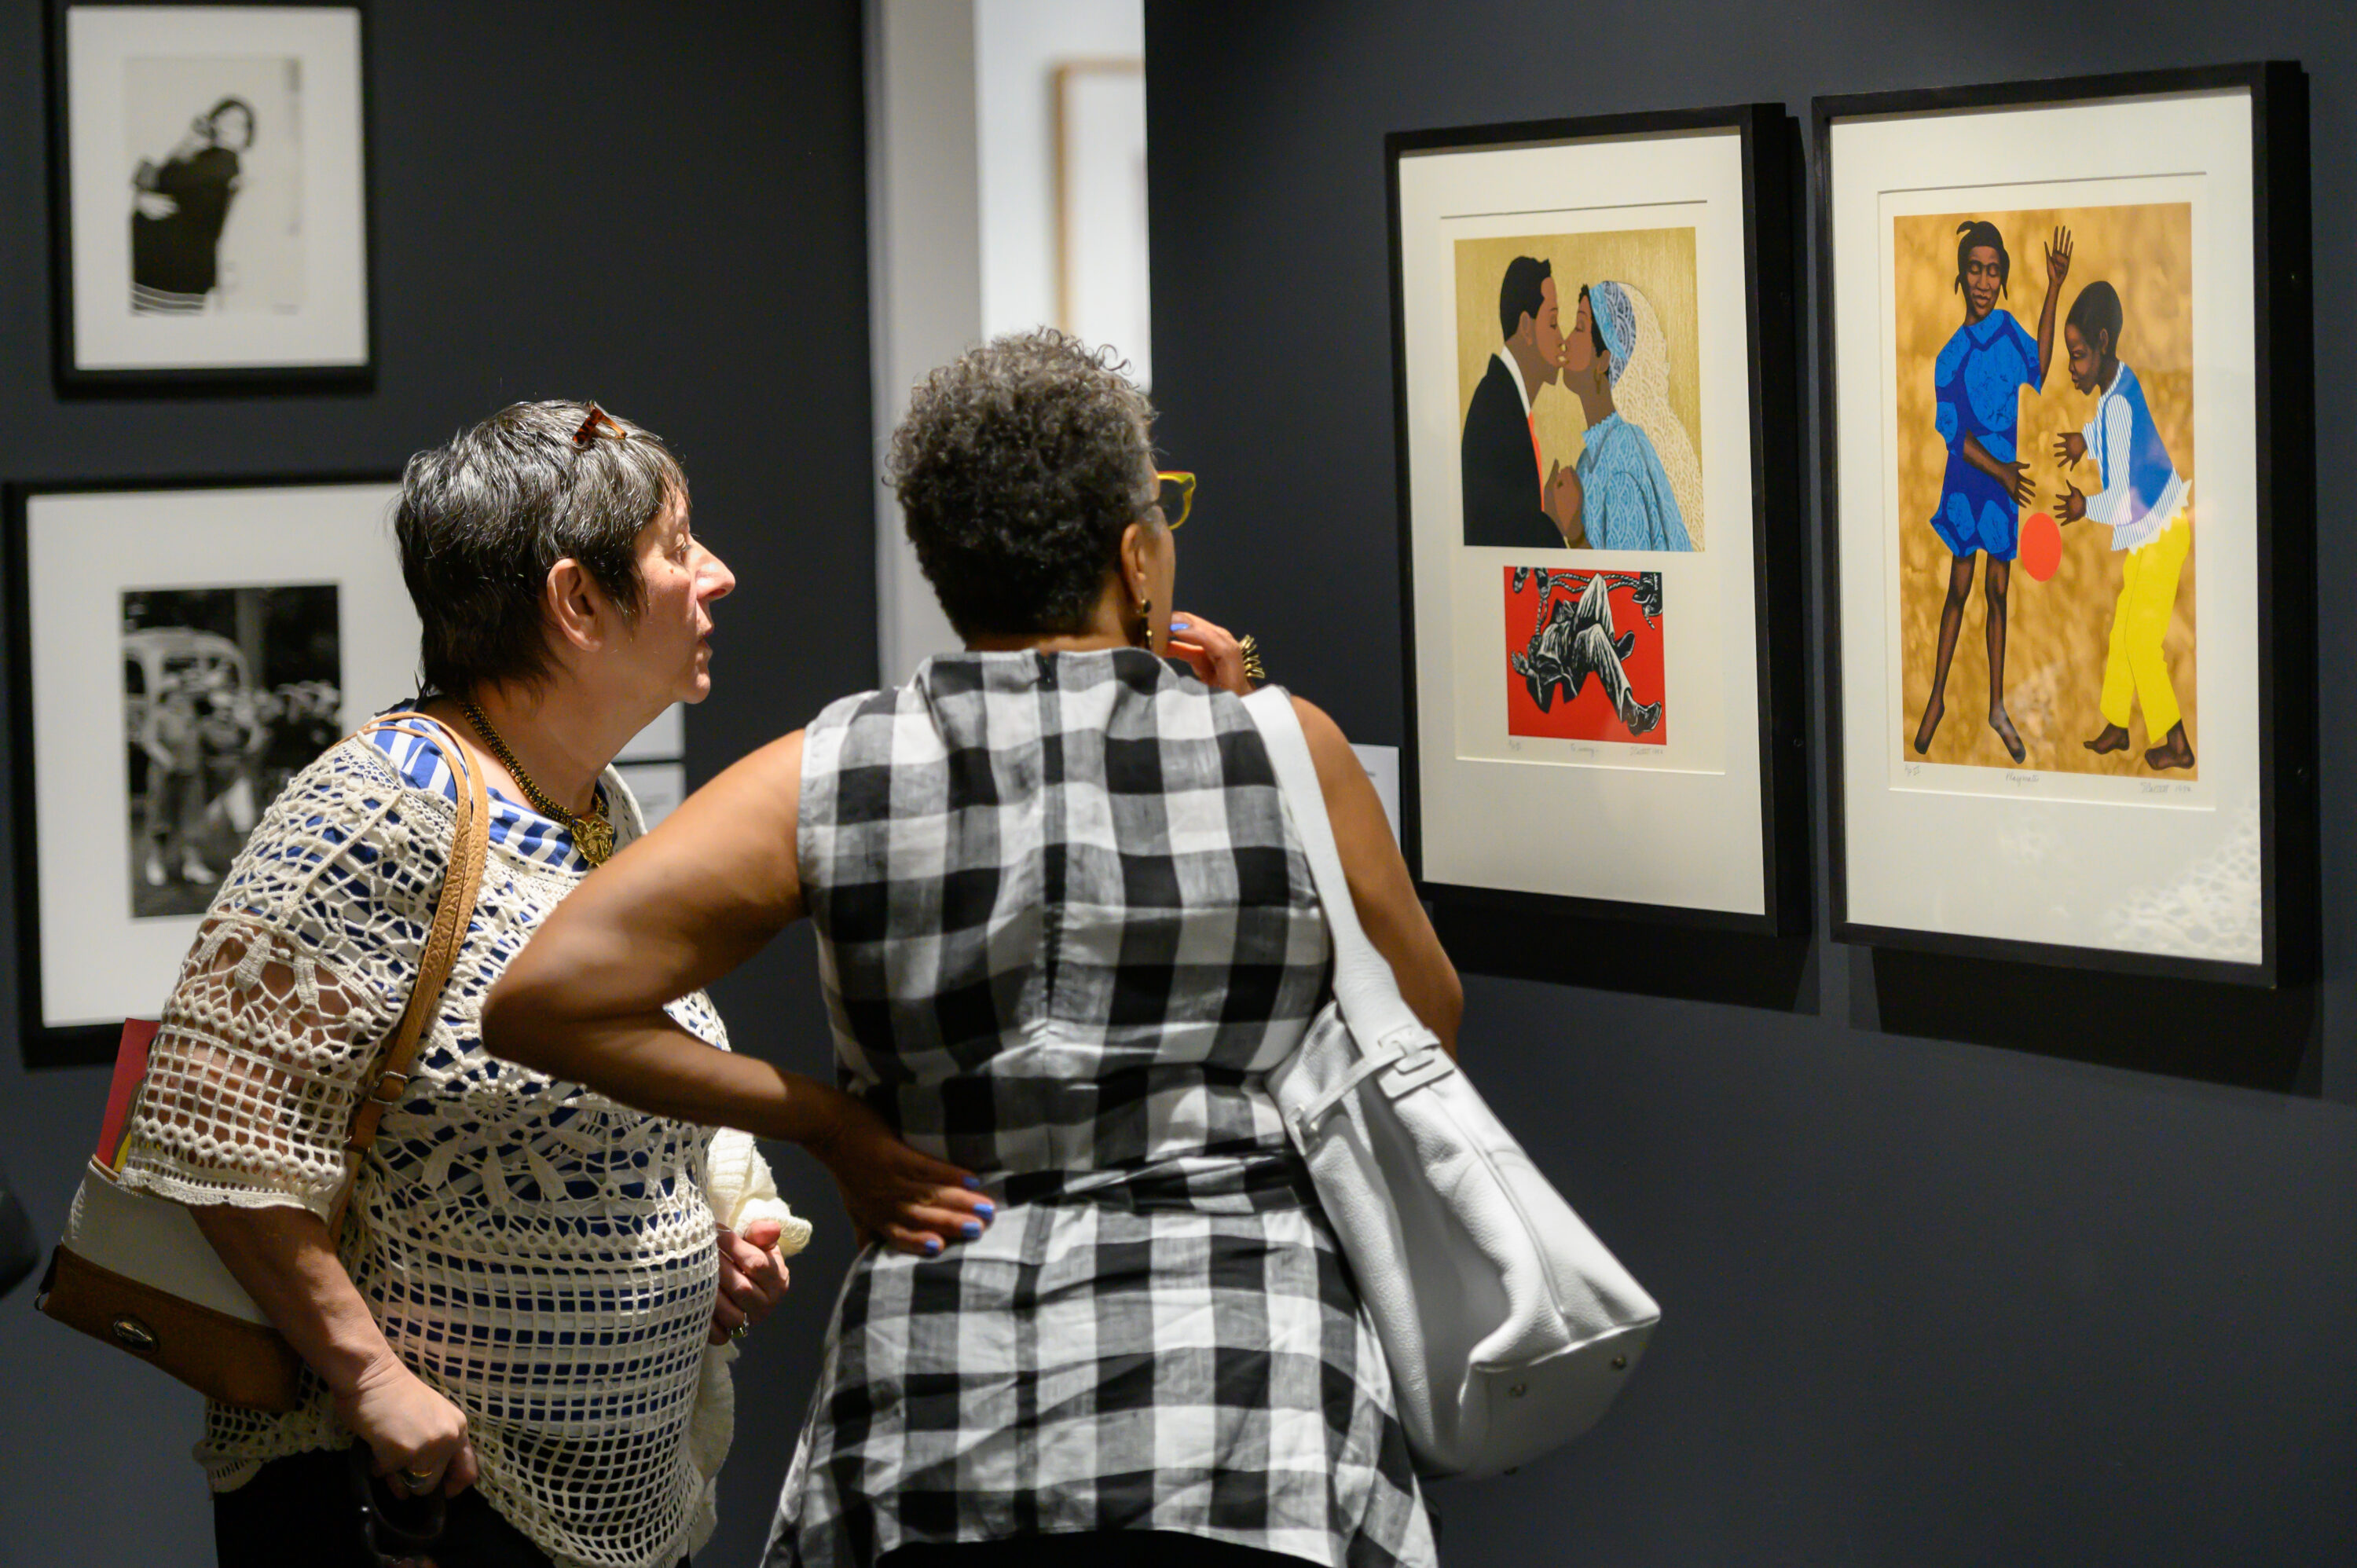 A light-skinned older woman with a cropped hair cut and a dark-skinned older woman also with a cropped hair cut stand in a gallery looking at two colorful lithographs framed side-by-side on a dark grey wall. The artwork on the left shows a dark-skinned couple mid-kiss after getting married; the artwork on the right shows a dark-skinned girl and boy playing with an orange ball.